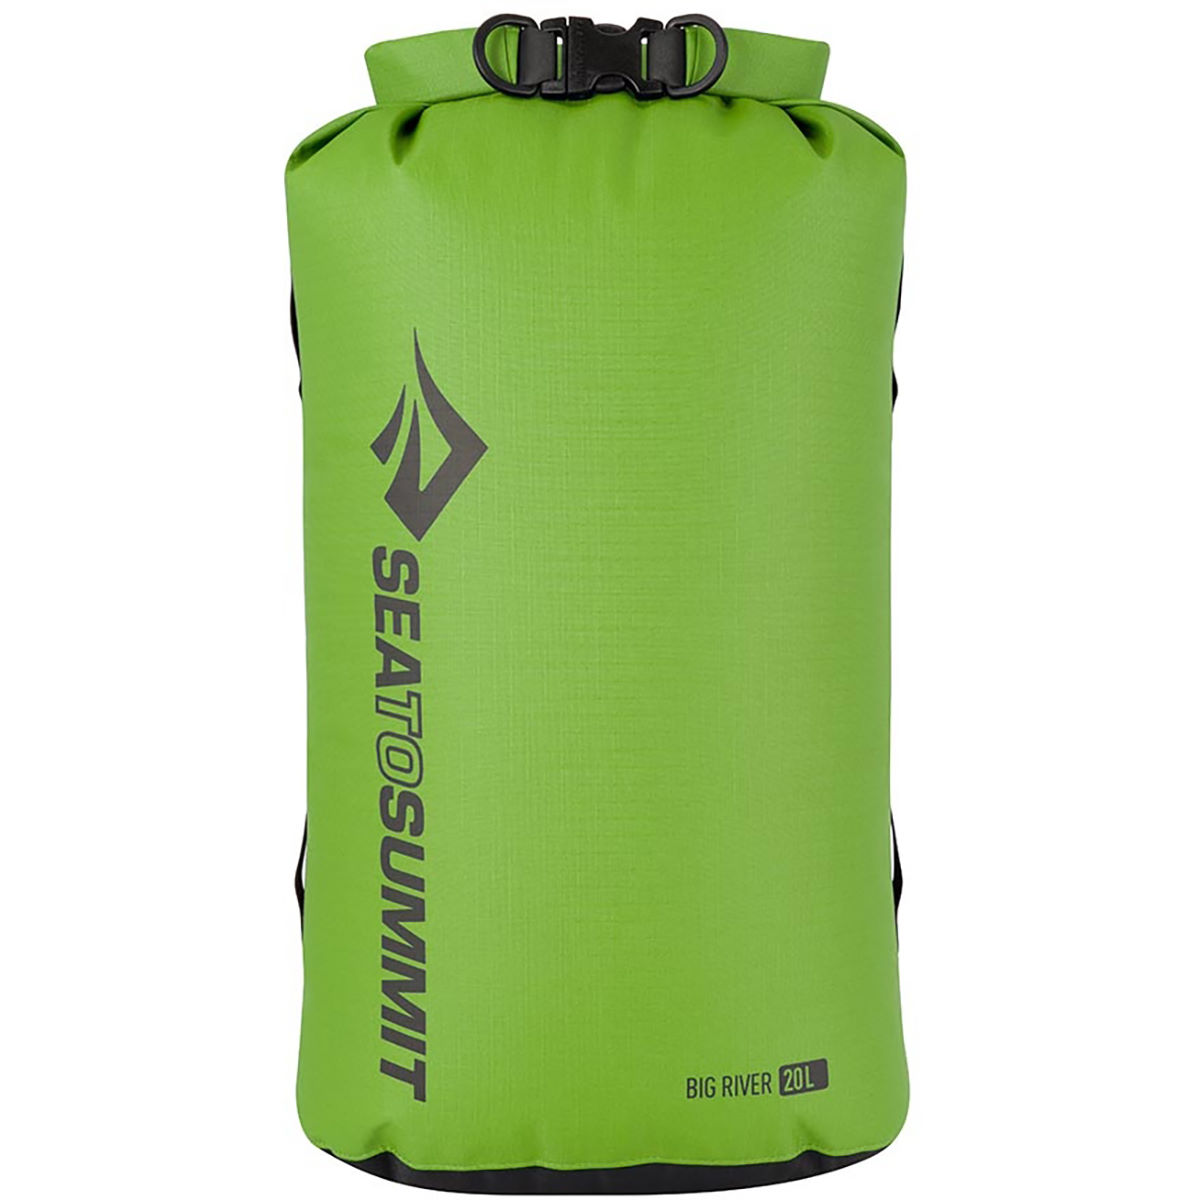 Sea to Summit Sea To Summit Big River Dry Bag (20 Litre)   Dry Bags